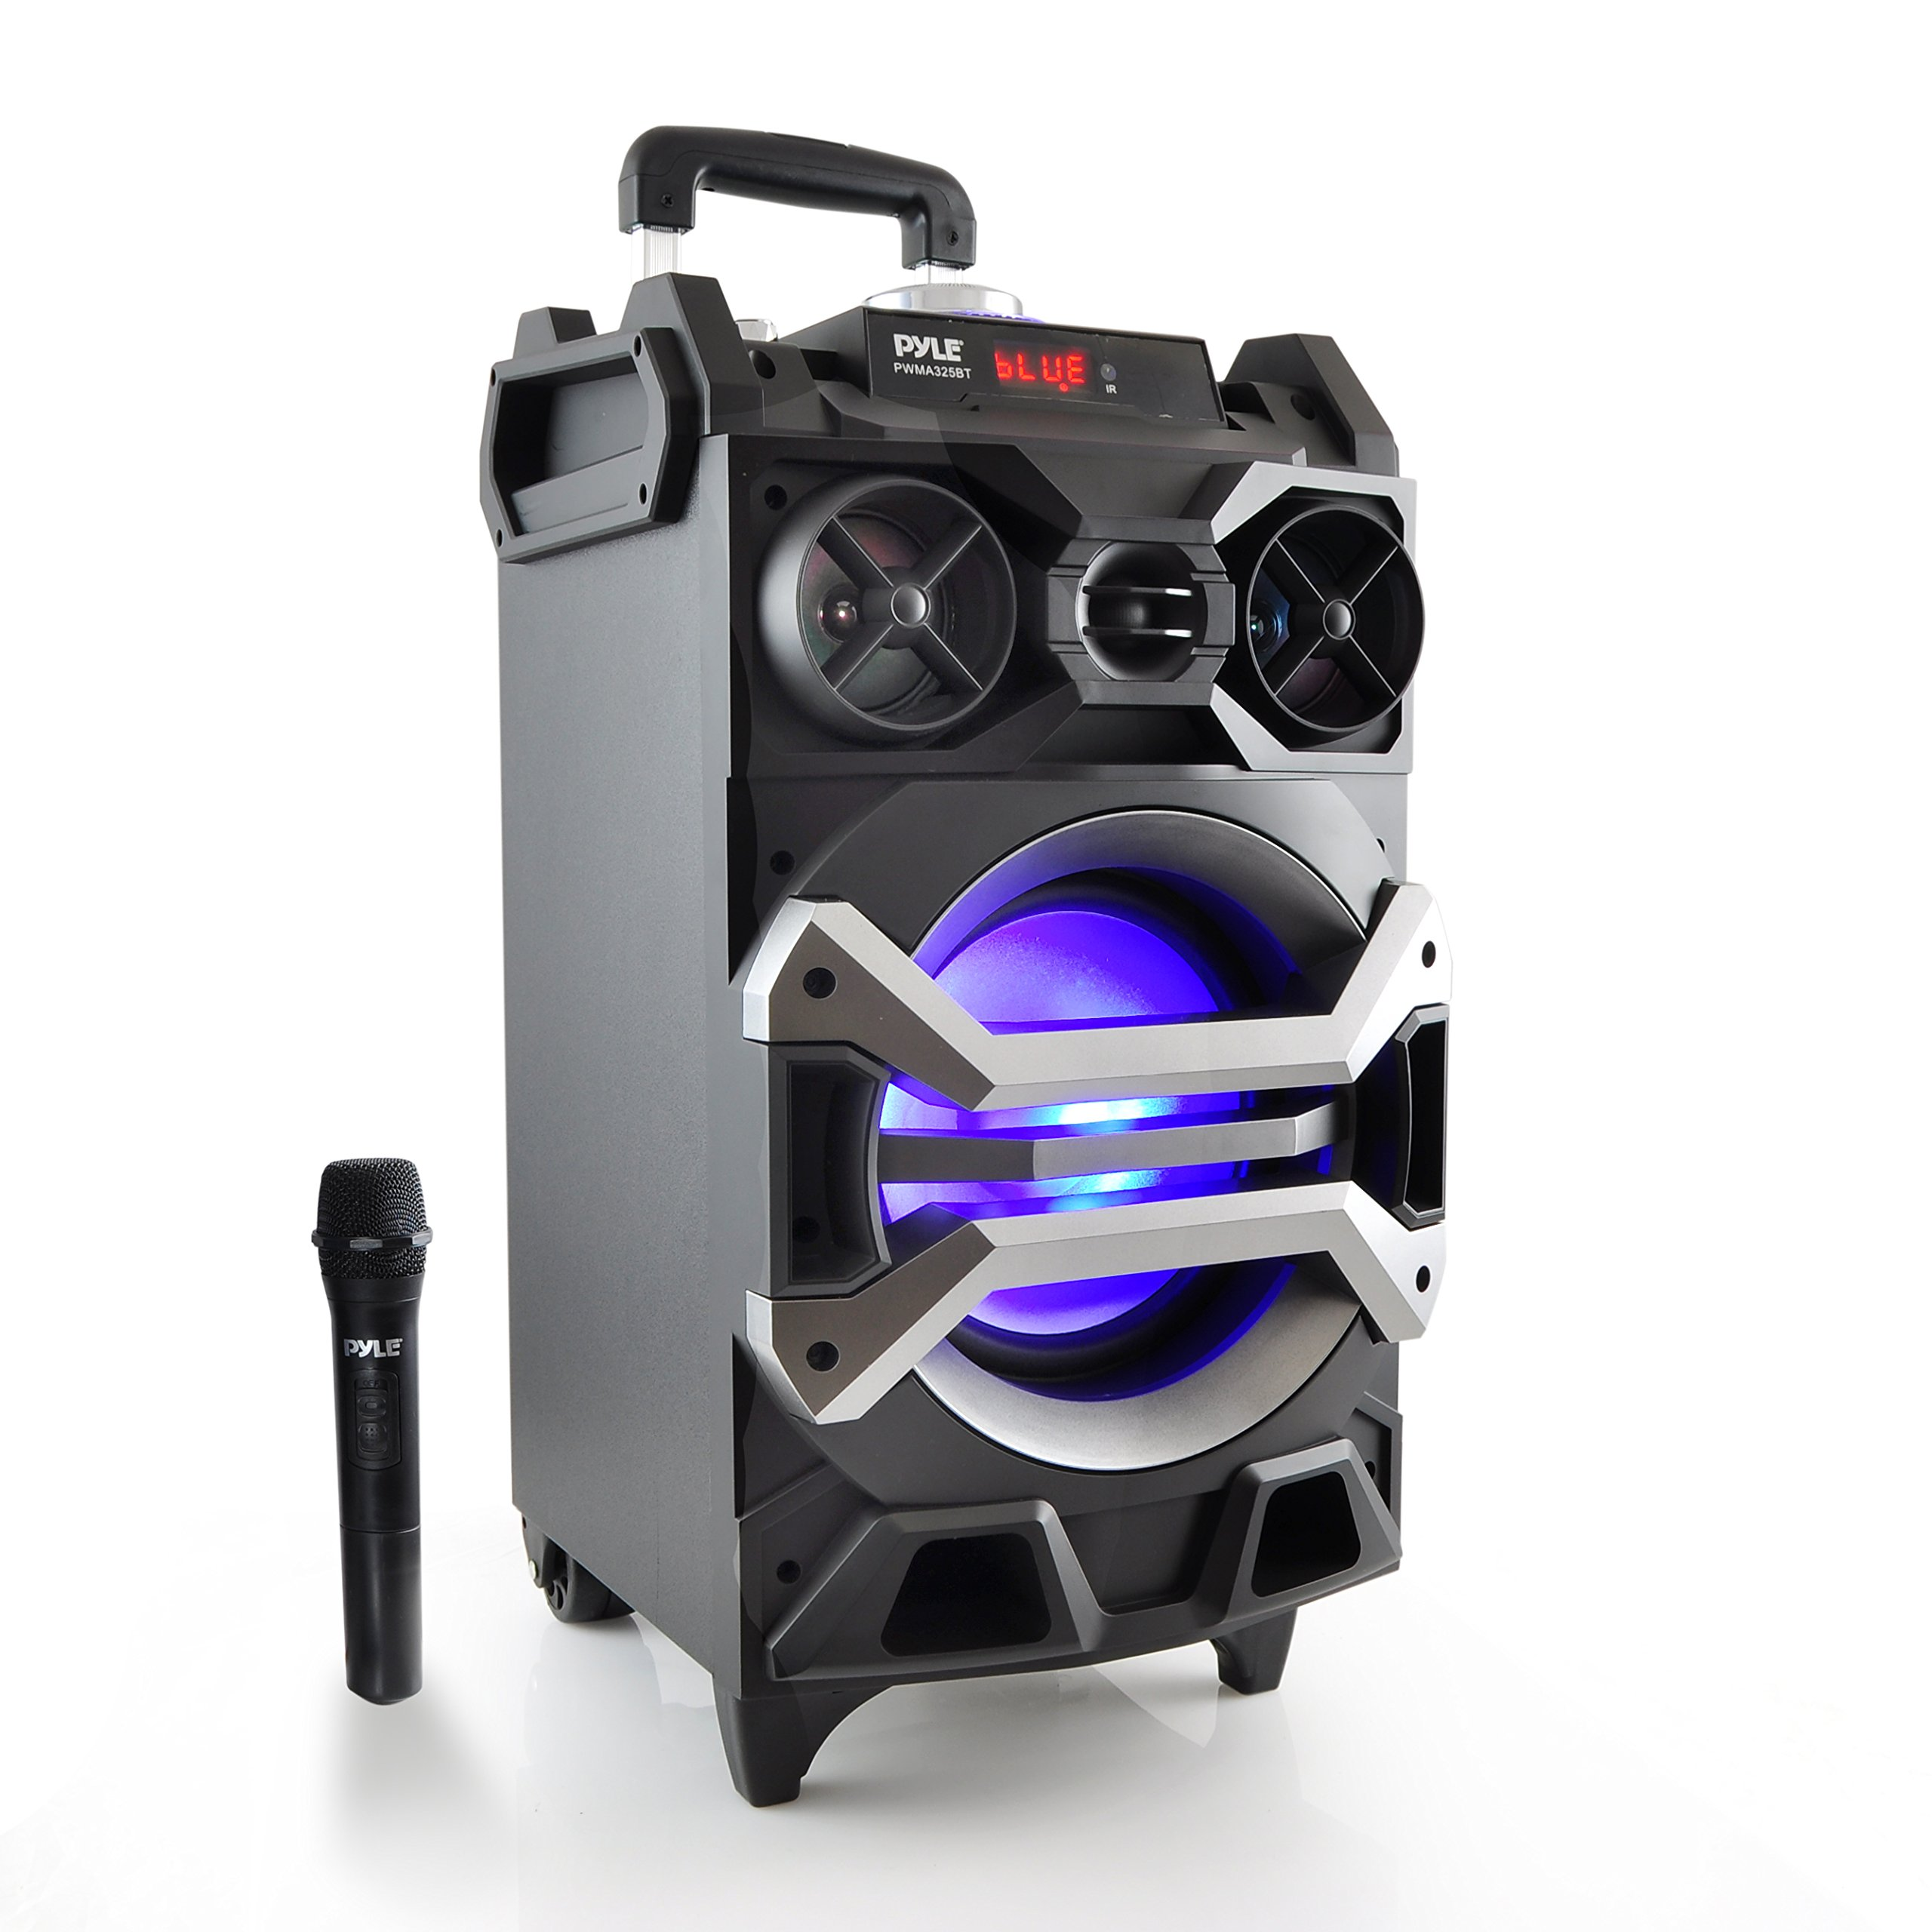 Pyle 500 Watt Outdoor Portable Bluetooth Karaoke Speaker System - PA Stereo with 8'' Subwoofer, DJ Lights Rechargeable Battery Wireless Microphone, Recording Ability, MP3/USB/SD/FM Radio - PWMA325BT by Pyle